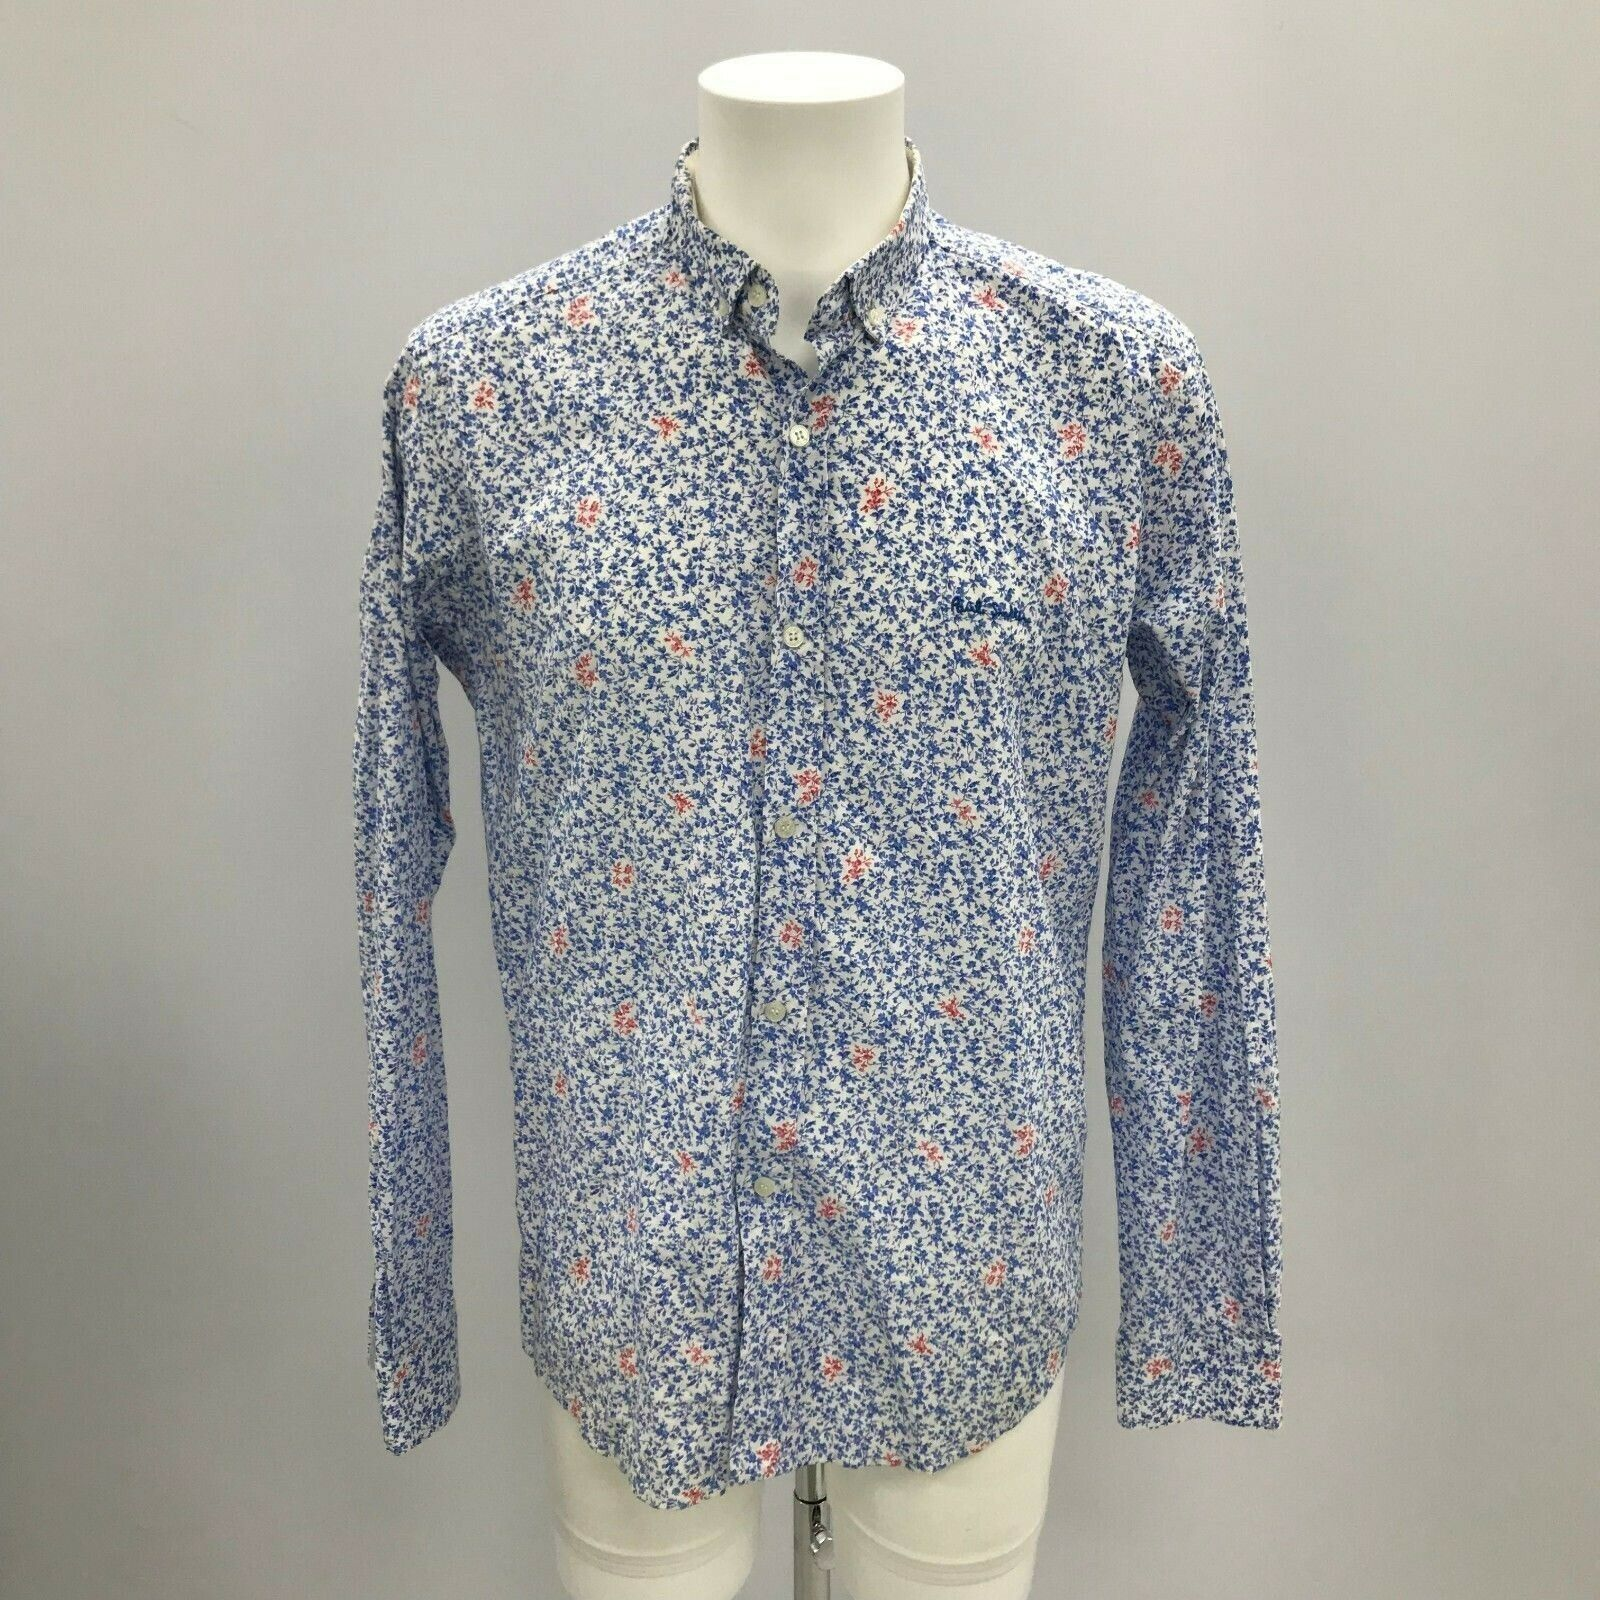 A Genuine Men's PAUL SMITH Floral Print Long Sleeves Shirt Size UK Large  7